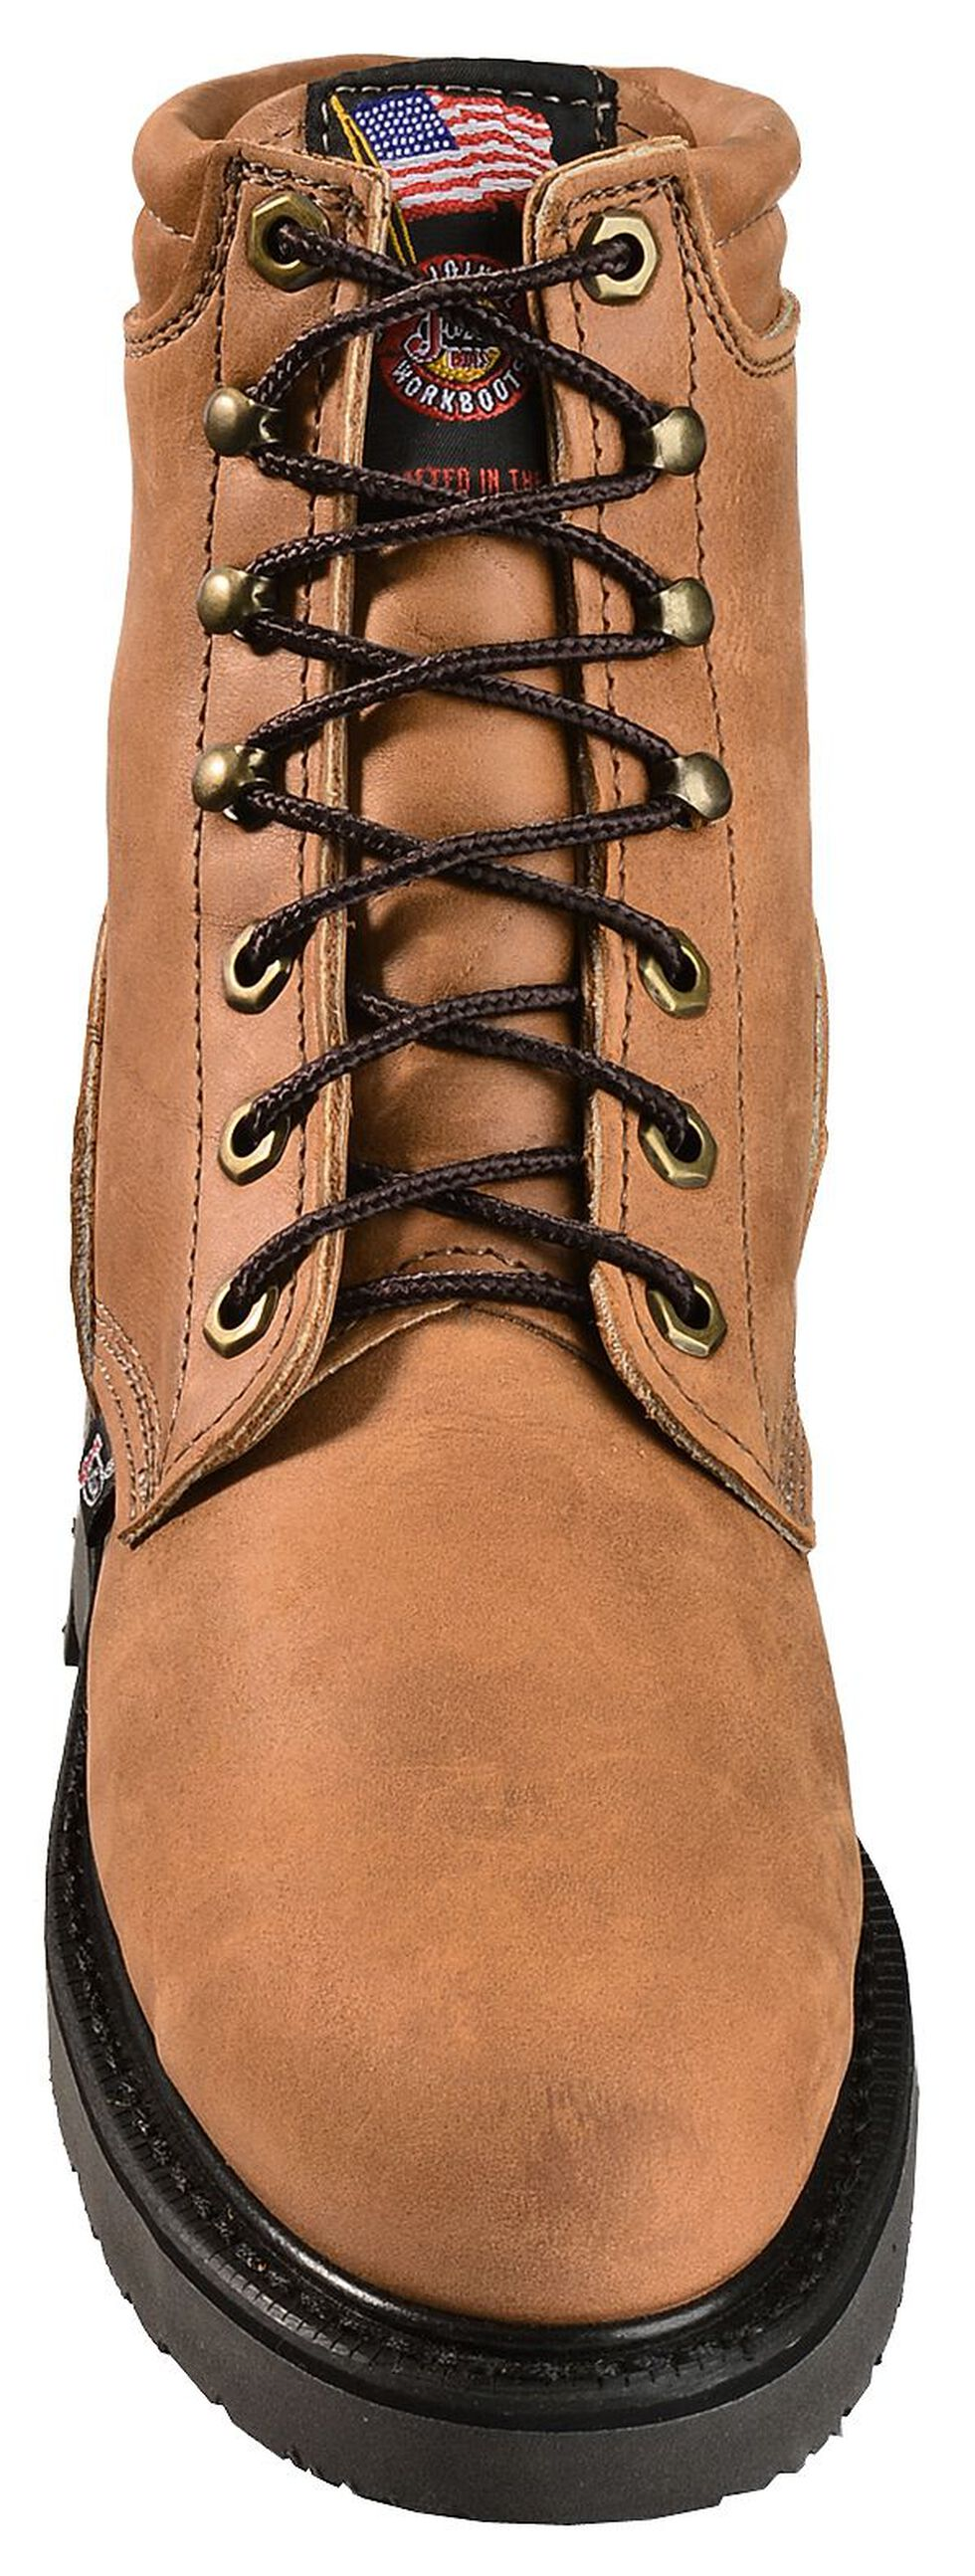 "Justin Women's 6"" Dary Lace-up EH Work Boots - Steel Toe, Brown, hi-res"